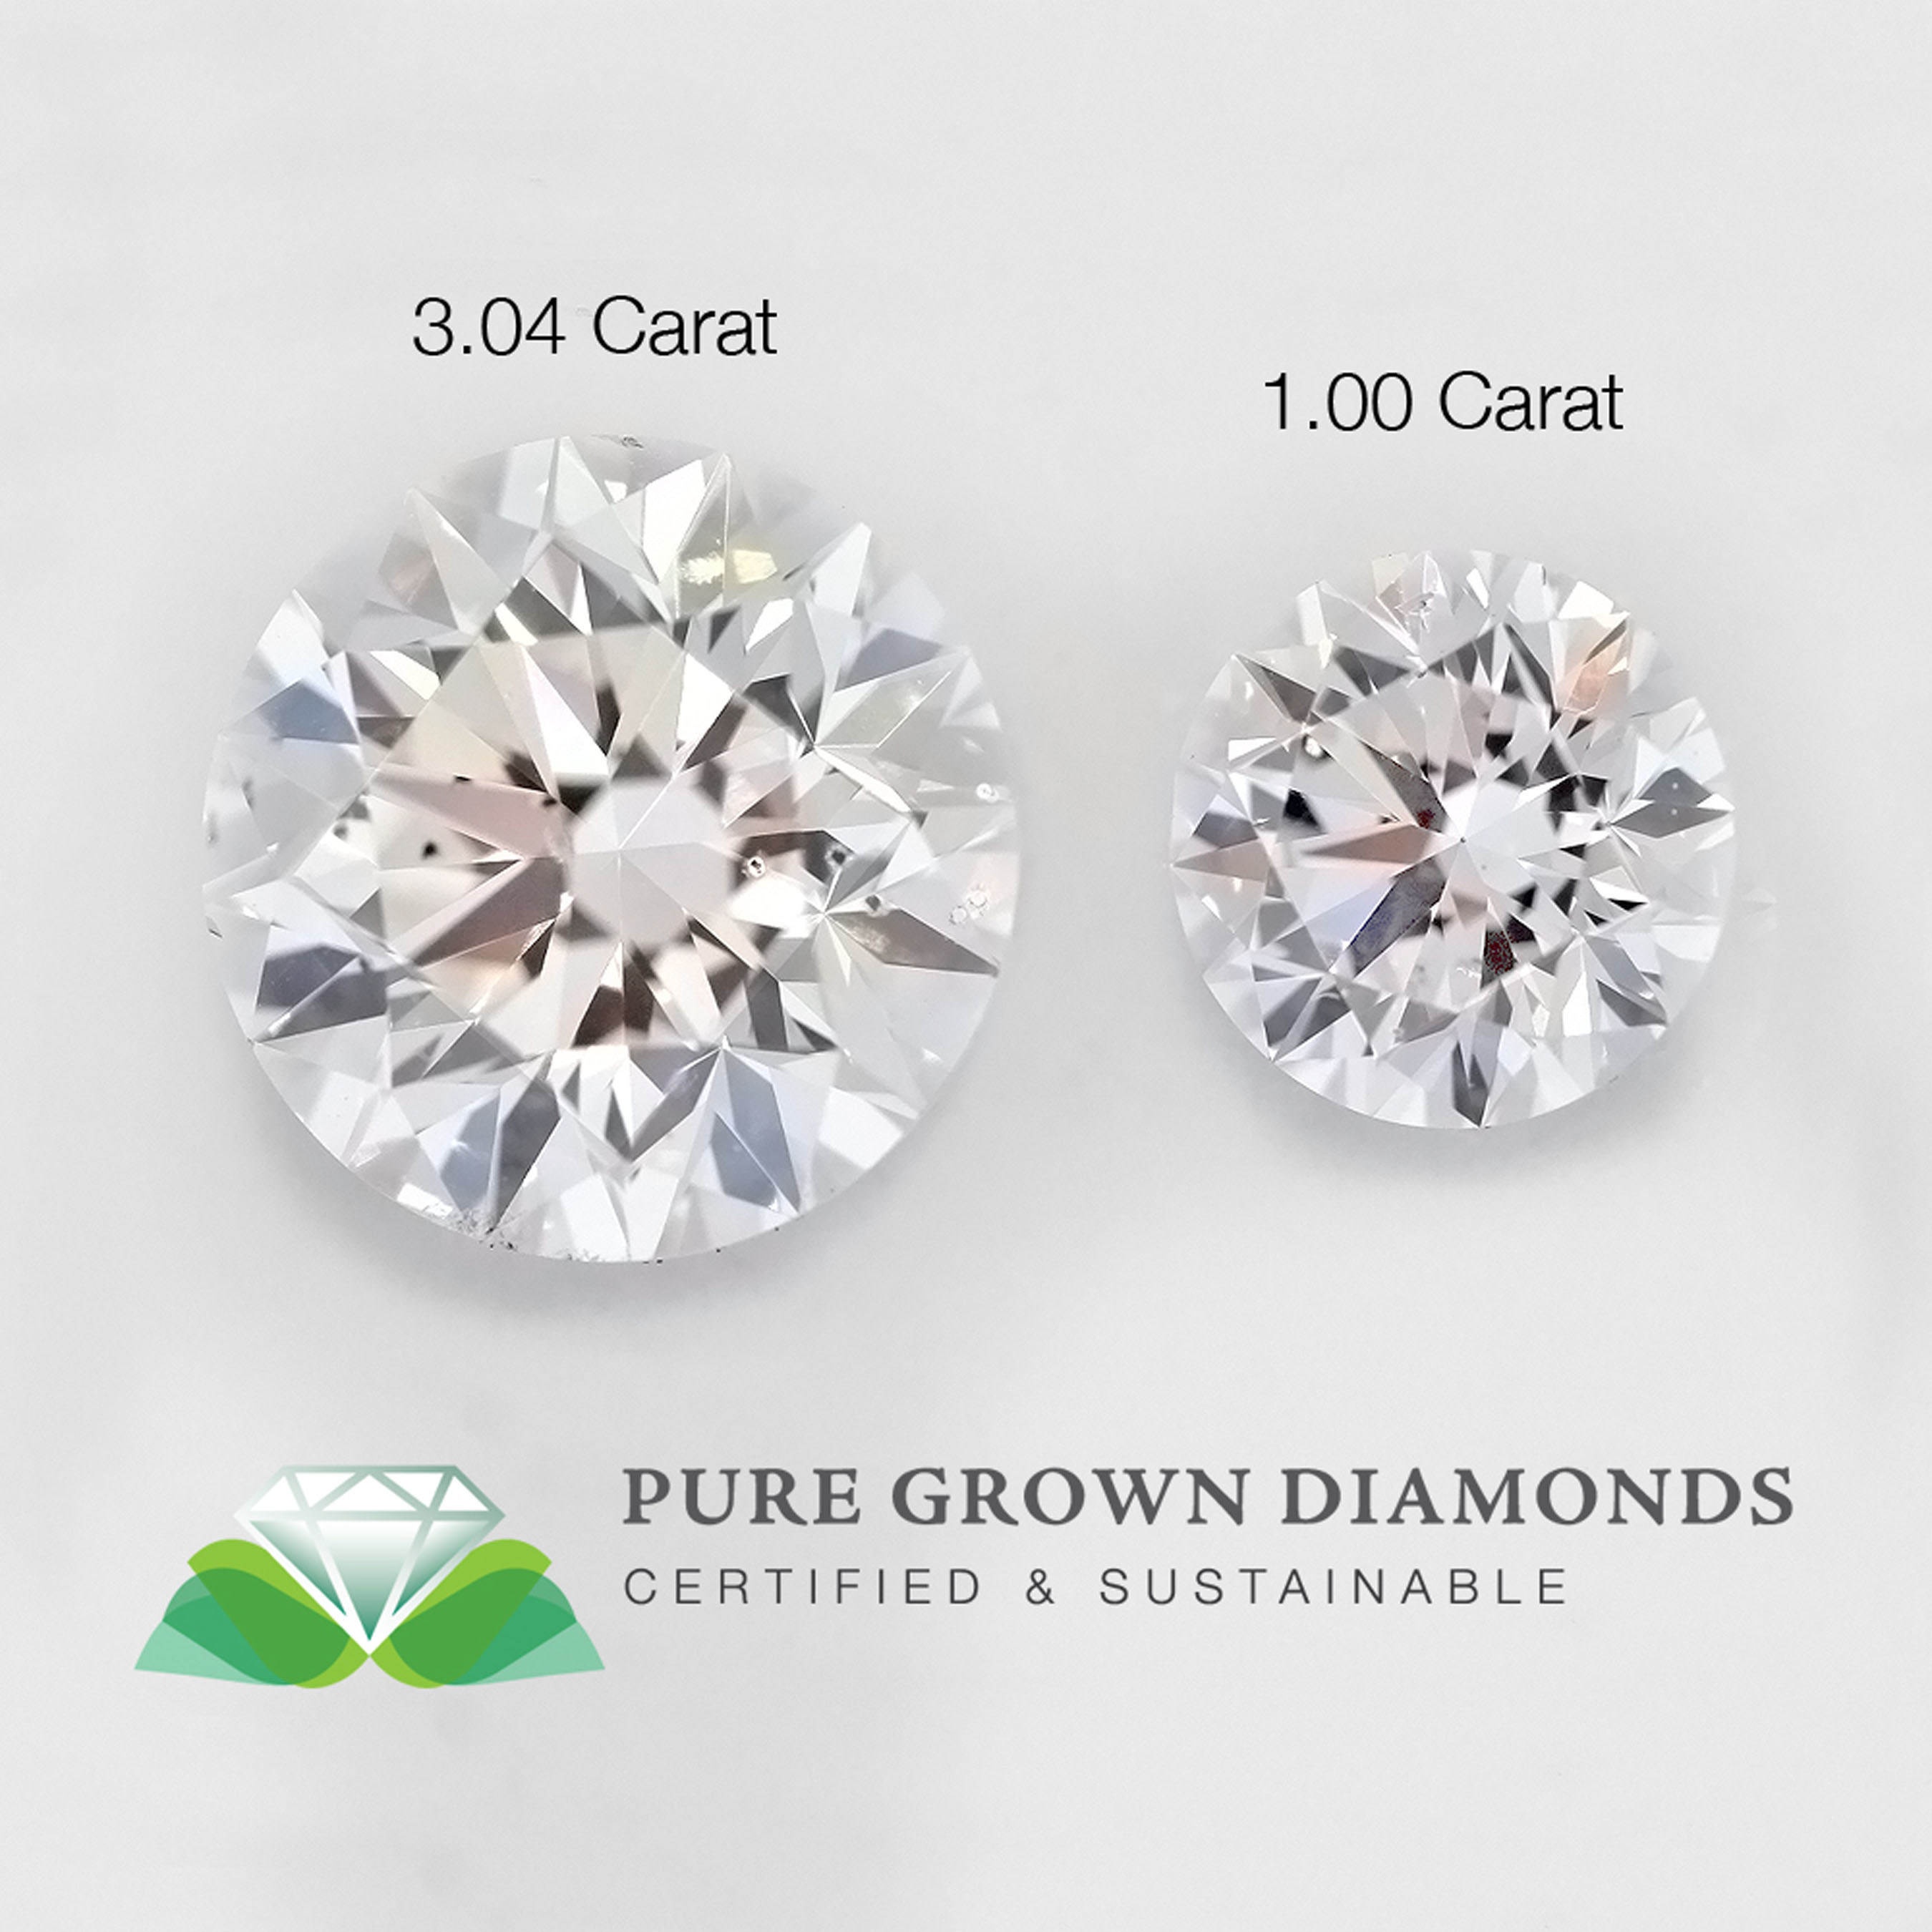 Pure Grown Diamonds announces scientific breakthrough with unveiling of world's largest laboratory-cultivated pure white diamond, indistinguishable from mined diamond, even under microscope, yet costs 30 to 40 percent less -- just in time for holidays. First-ever, largest lab-grown diamond is 3.04 carats shown here in comparison to 1.0 carat stone at showroom on Manhattan's Jewelry Row.